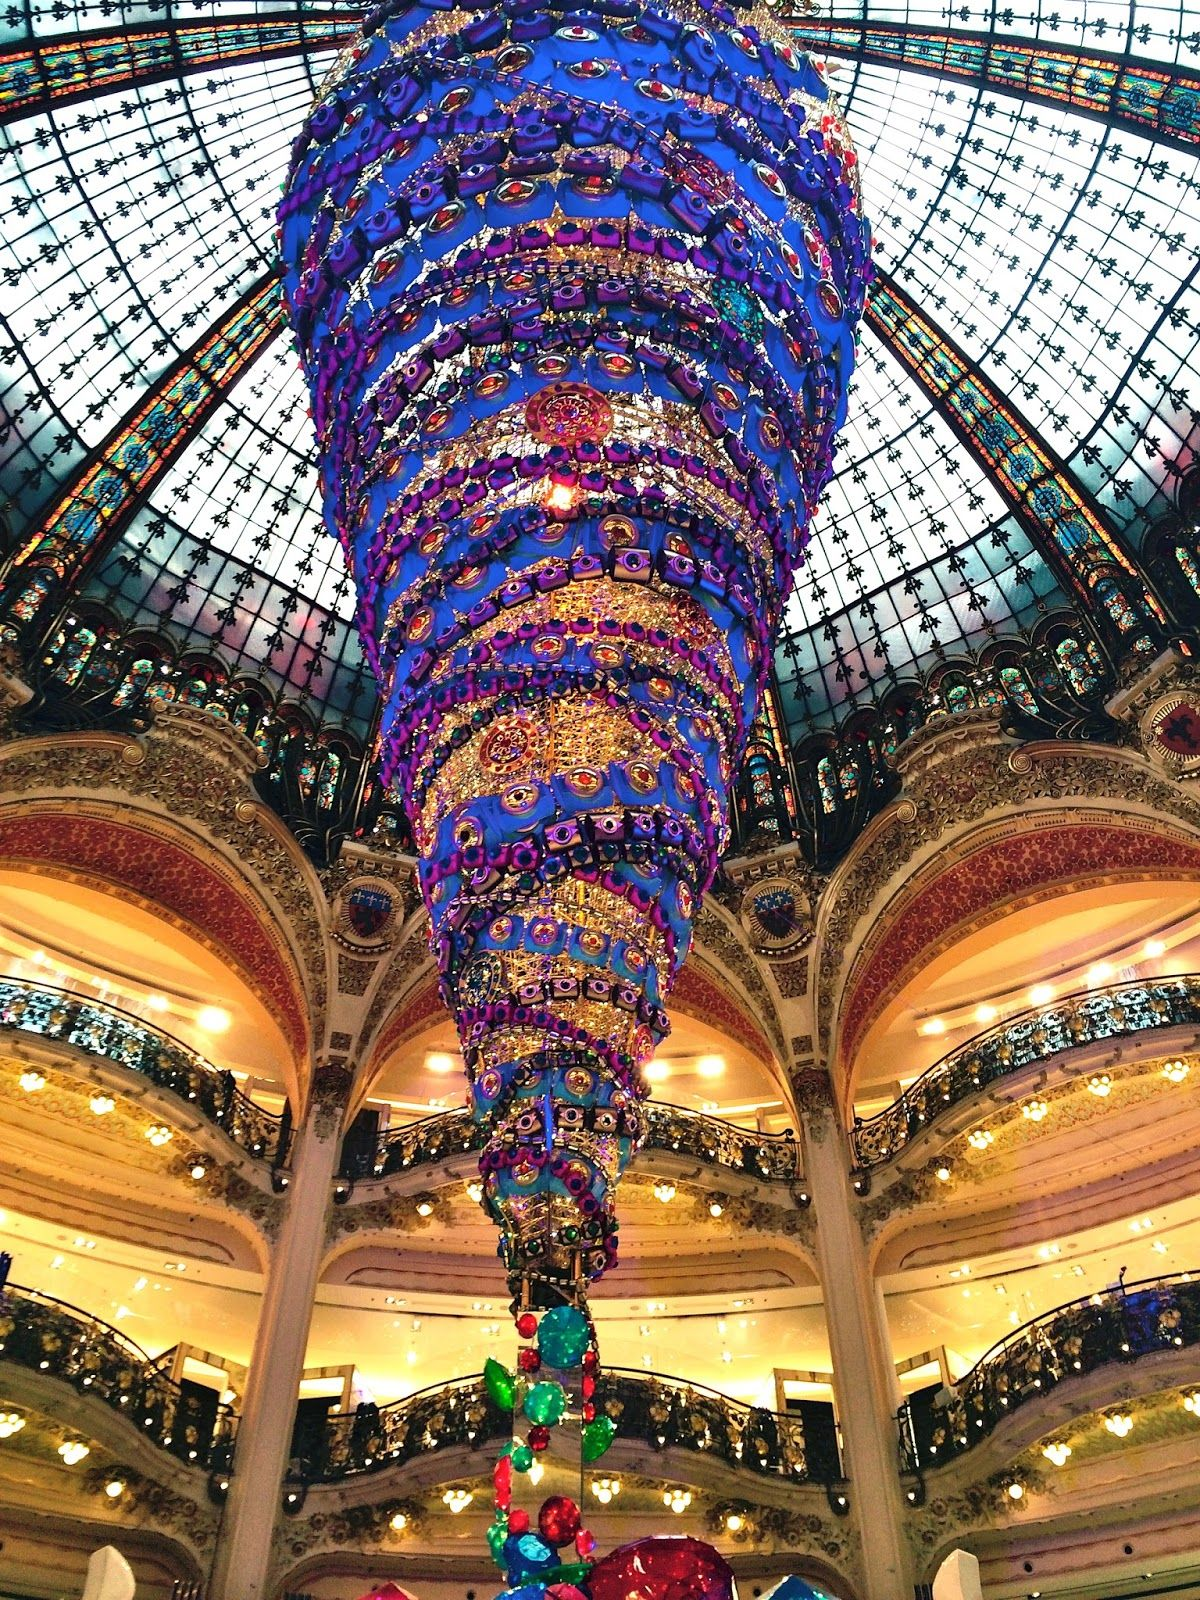 Holiday Mall Display Christmas At Galeries Lafayetteprintemps, Paris, France,Turning Christmas